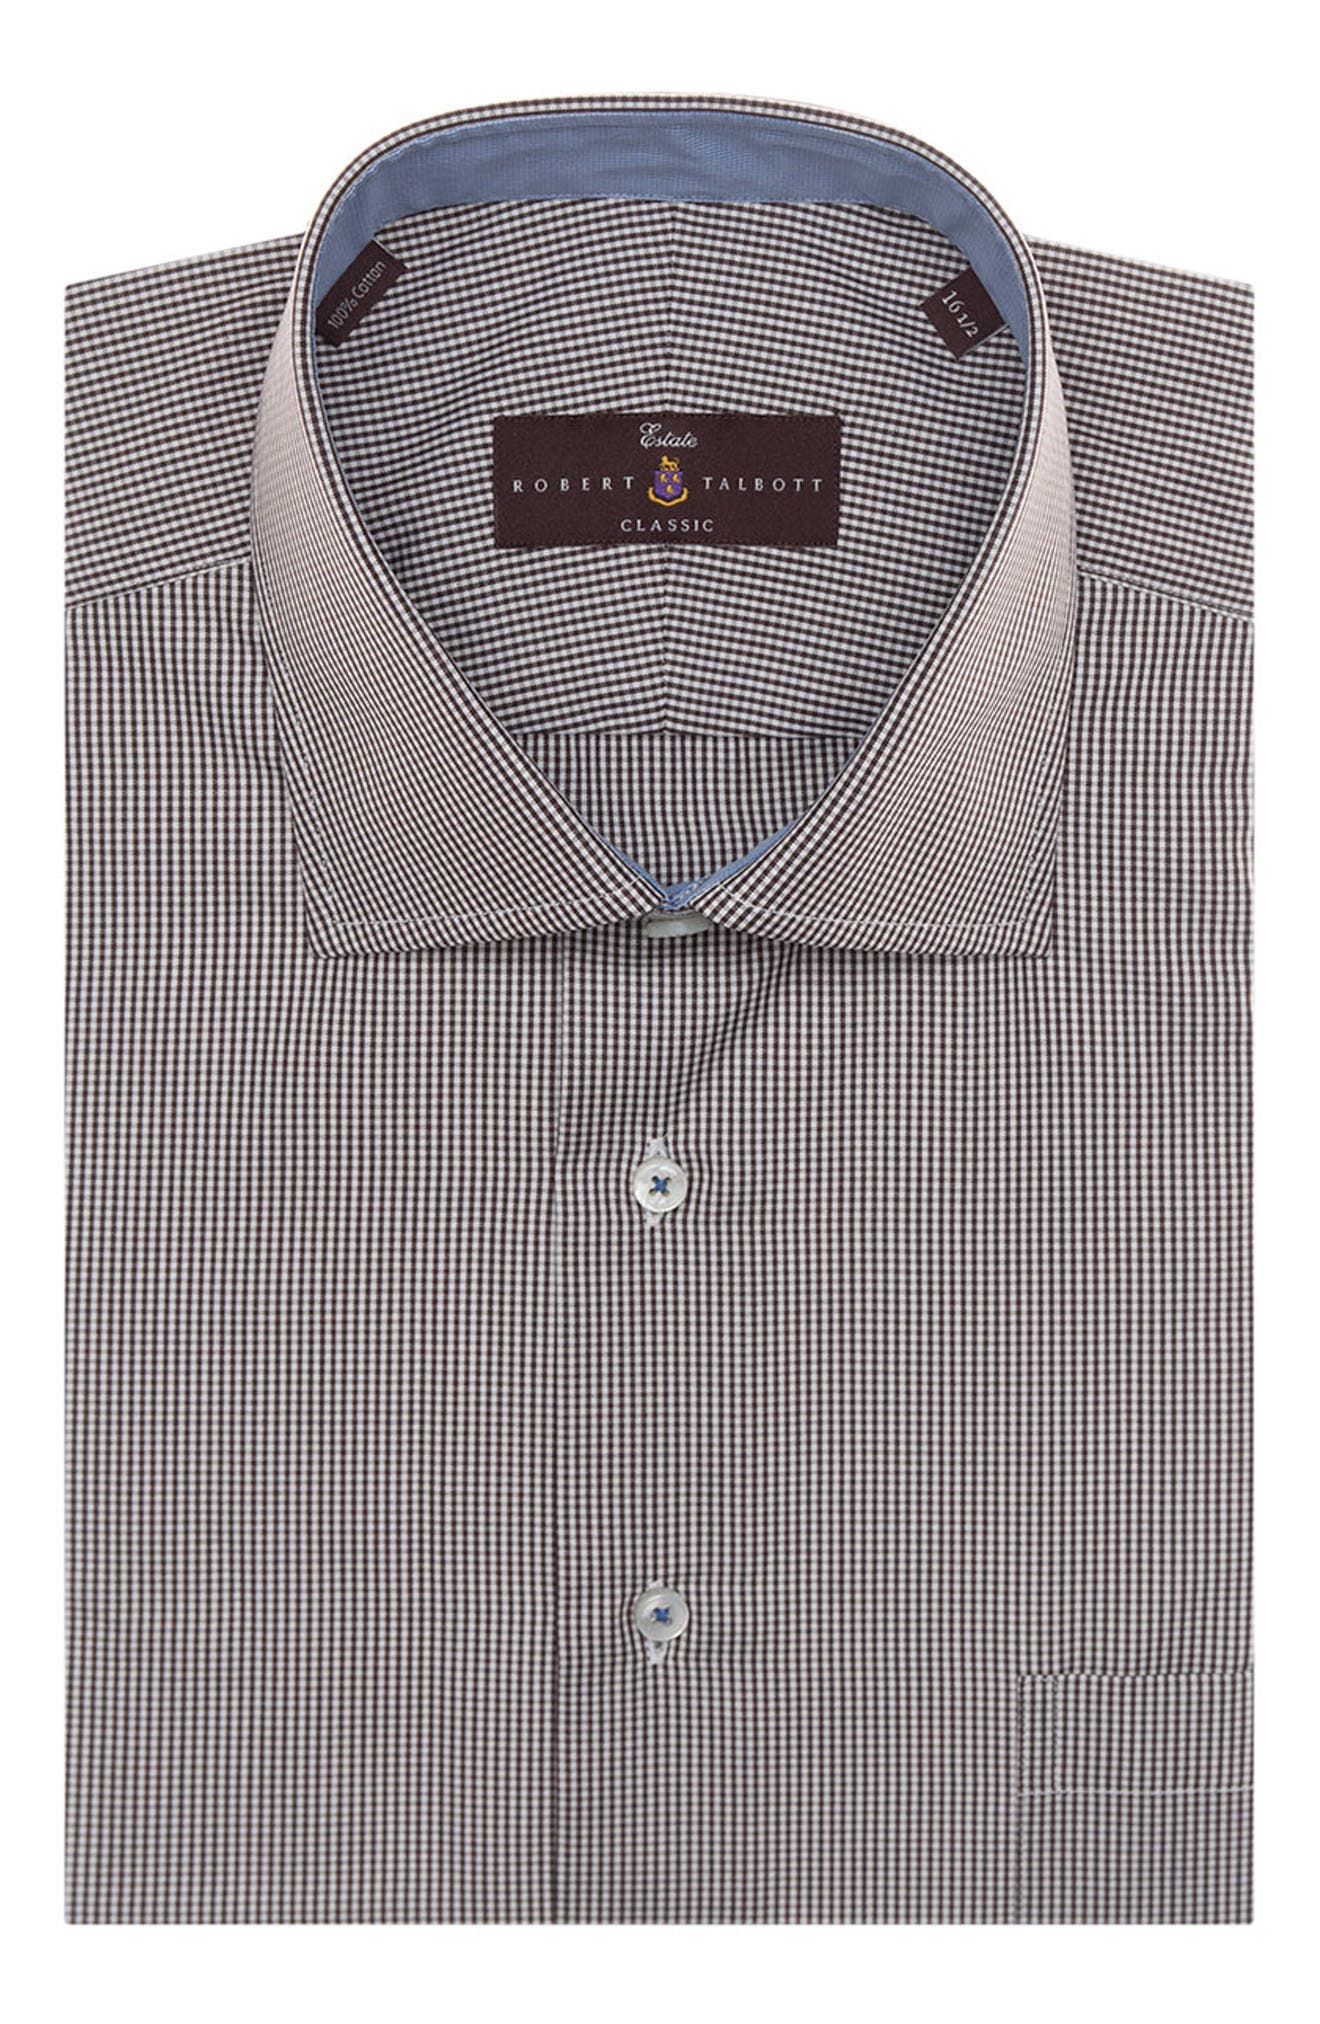 Tailored Fit Check Dress Shirt,                             Main thumbnail 1, color,                             201